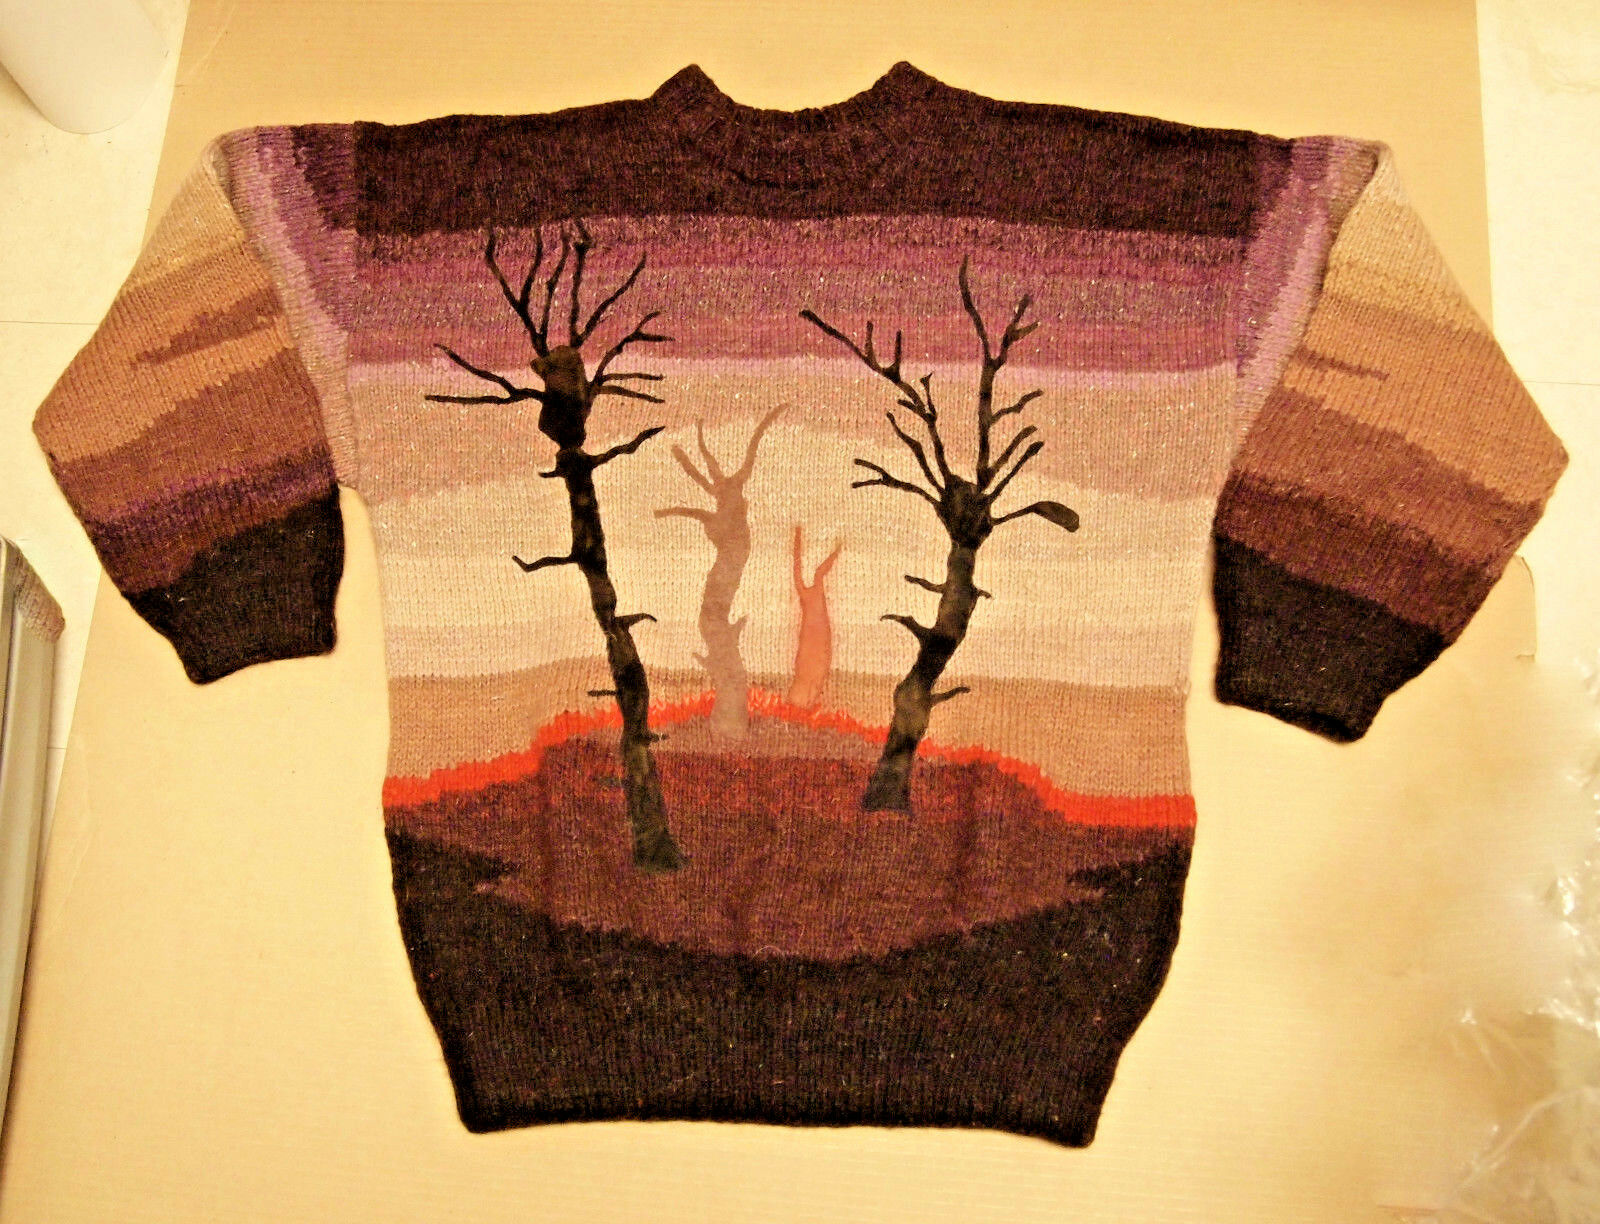 Artisans Art Hand-Knited  Wool & Suede Leather Sweater for Her Large Size